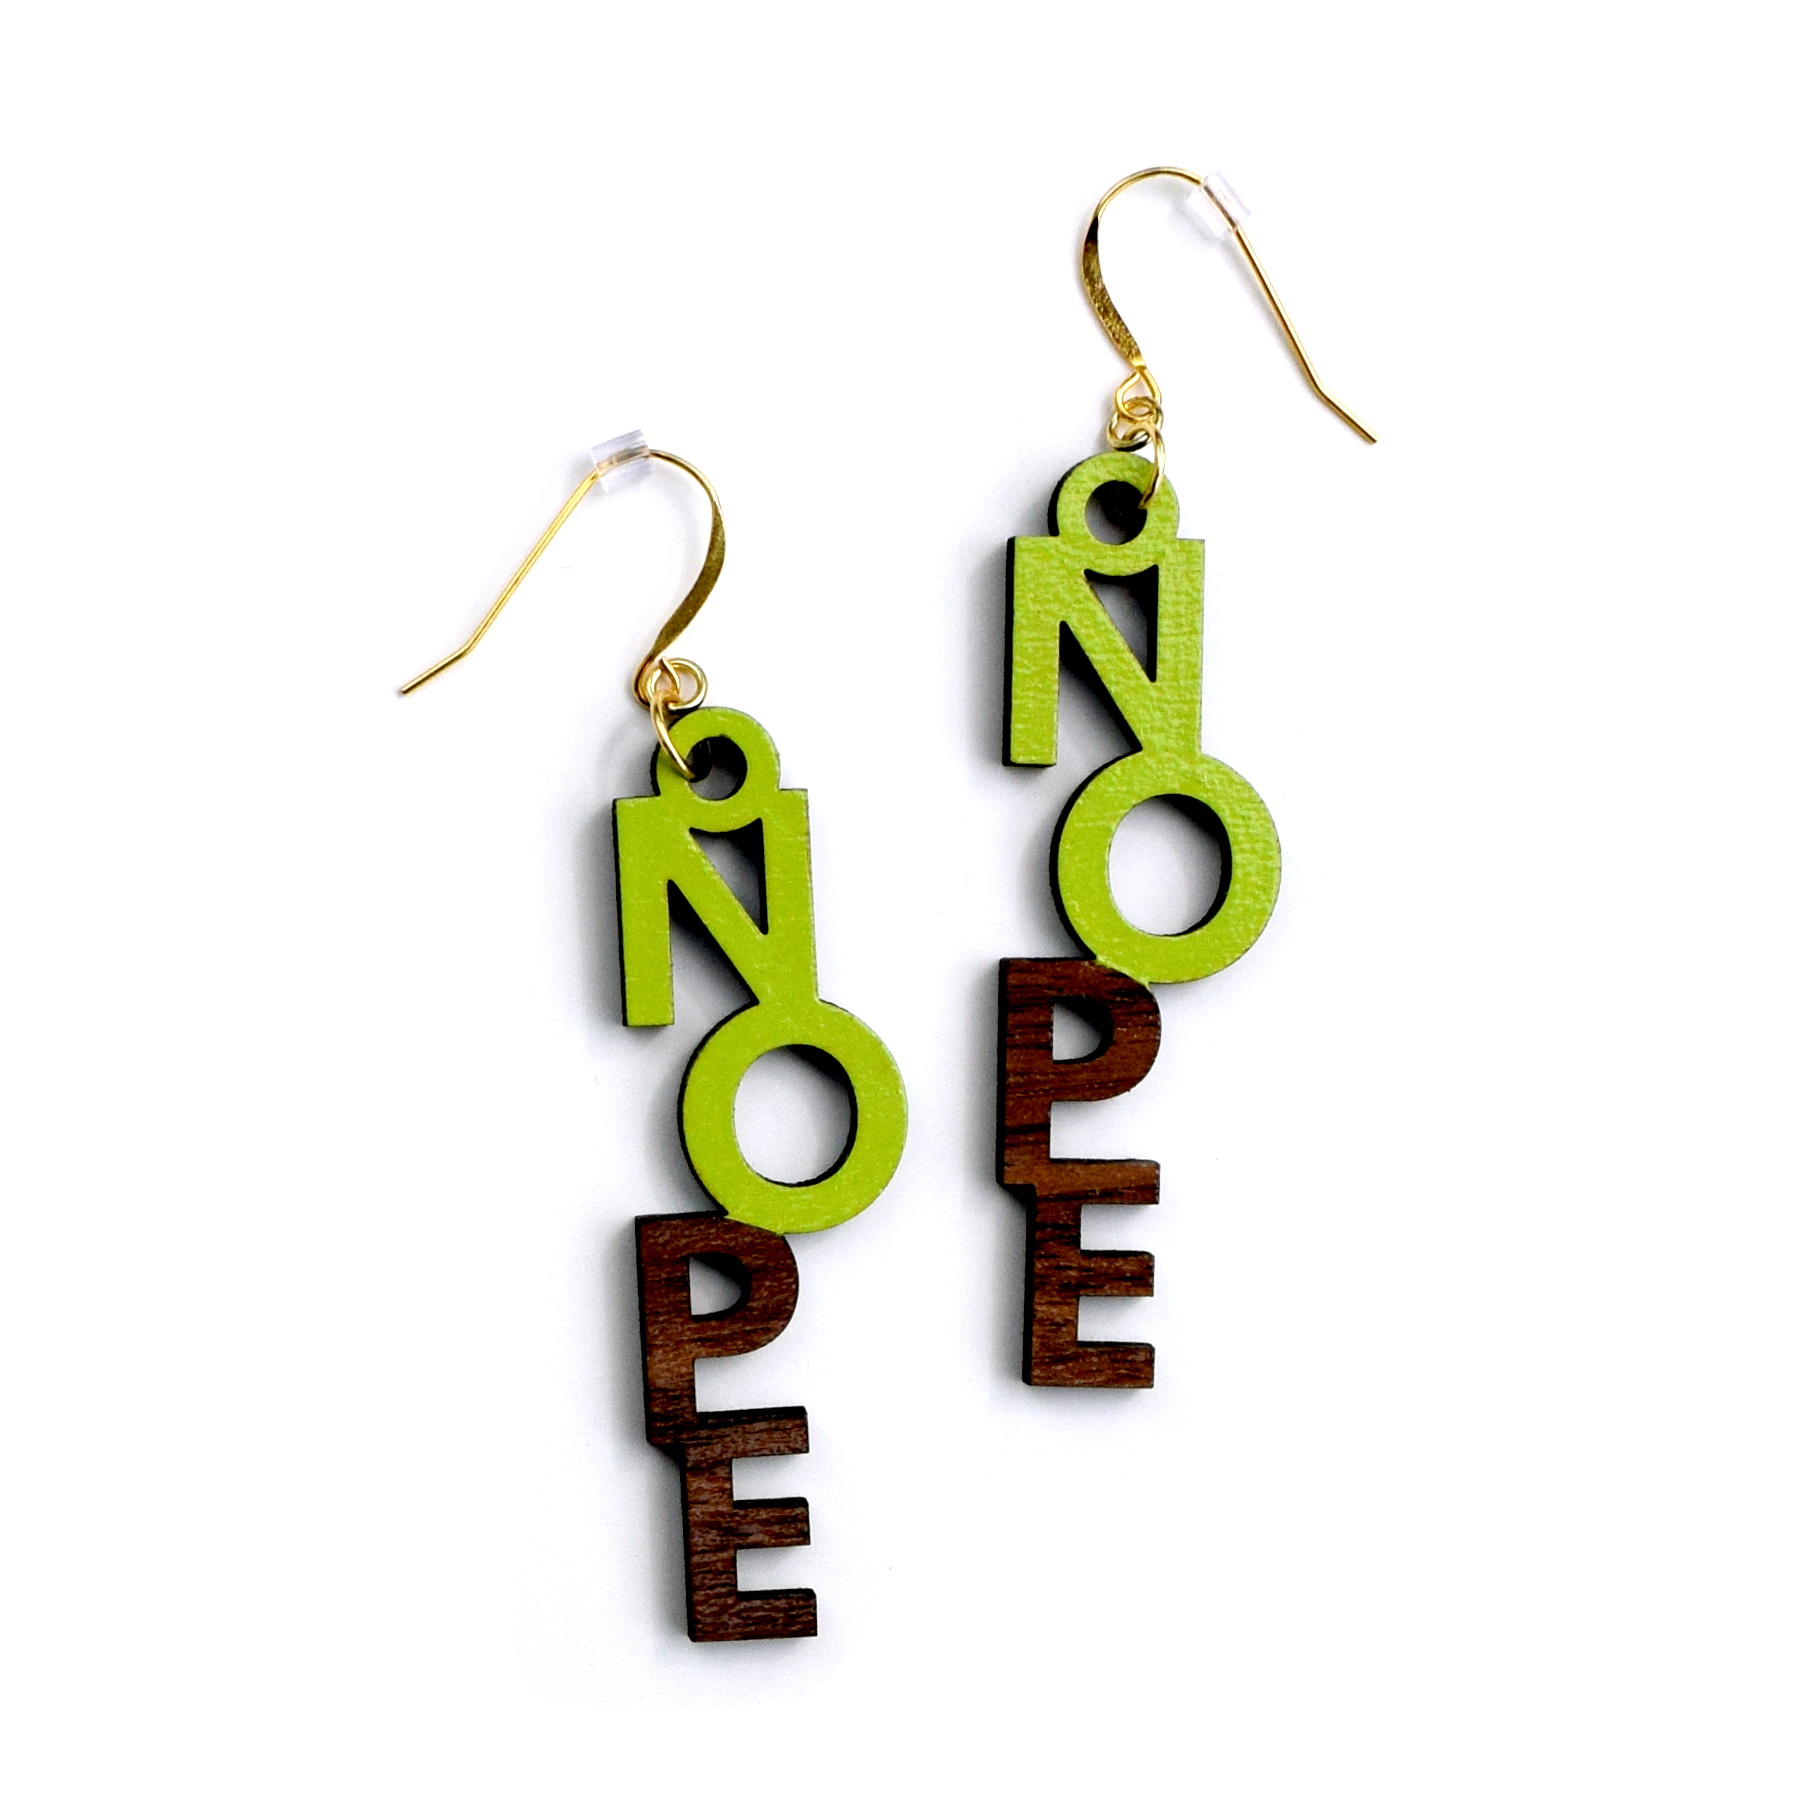 Nope Earrings